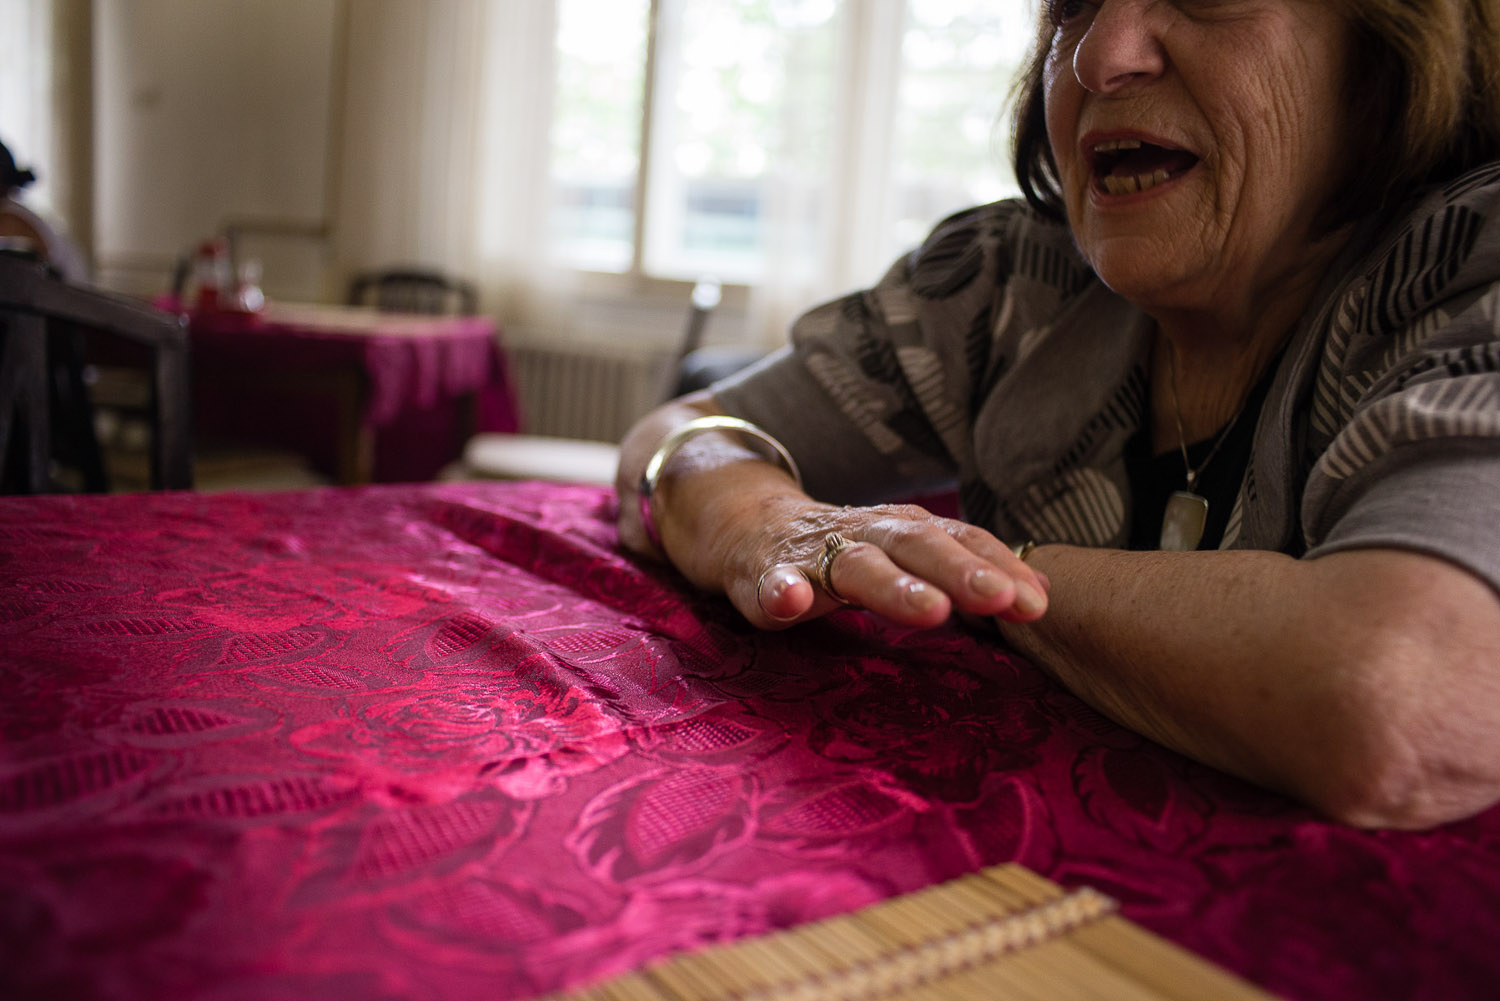 Erna Debevec is one of the only remaining members of the community who still speaks Ladino (Judeo-Spanish), the traditional language of Sephardic Jews.